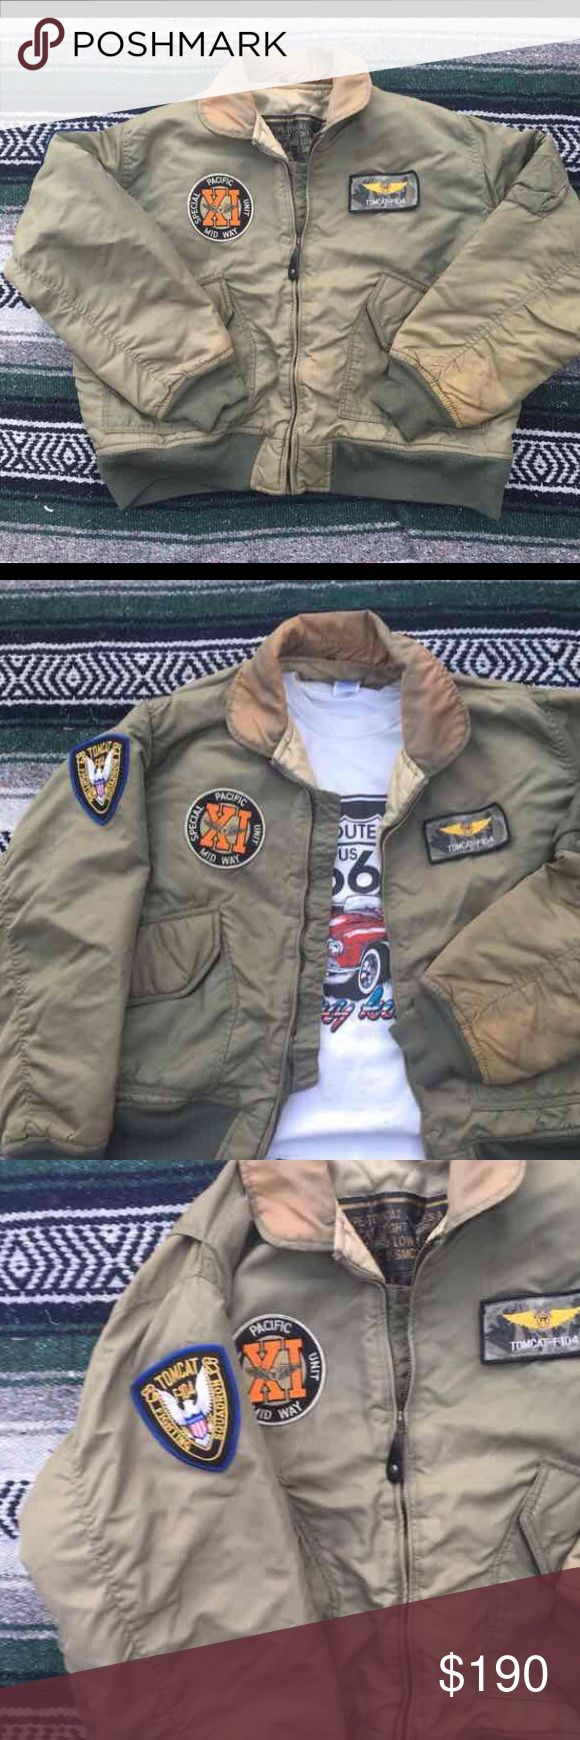 Tomcat Vintage 1940s Bomber Jacket This is a collector item. In vintage but good condition. Size medium. Dated at 1940s and is genuine military. Embroidered on the back. Vintage Jackets & Coats Puffers